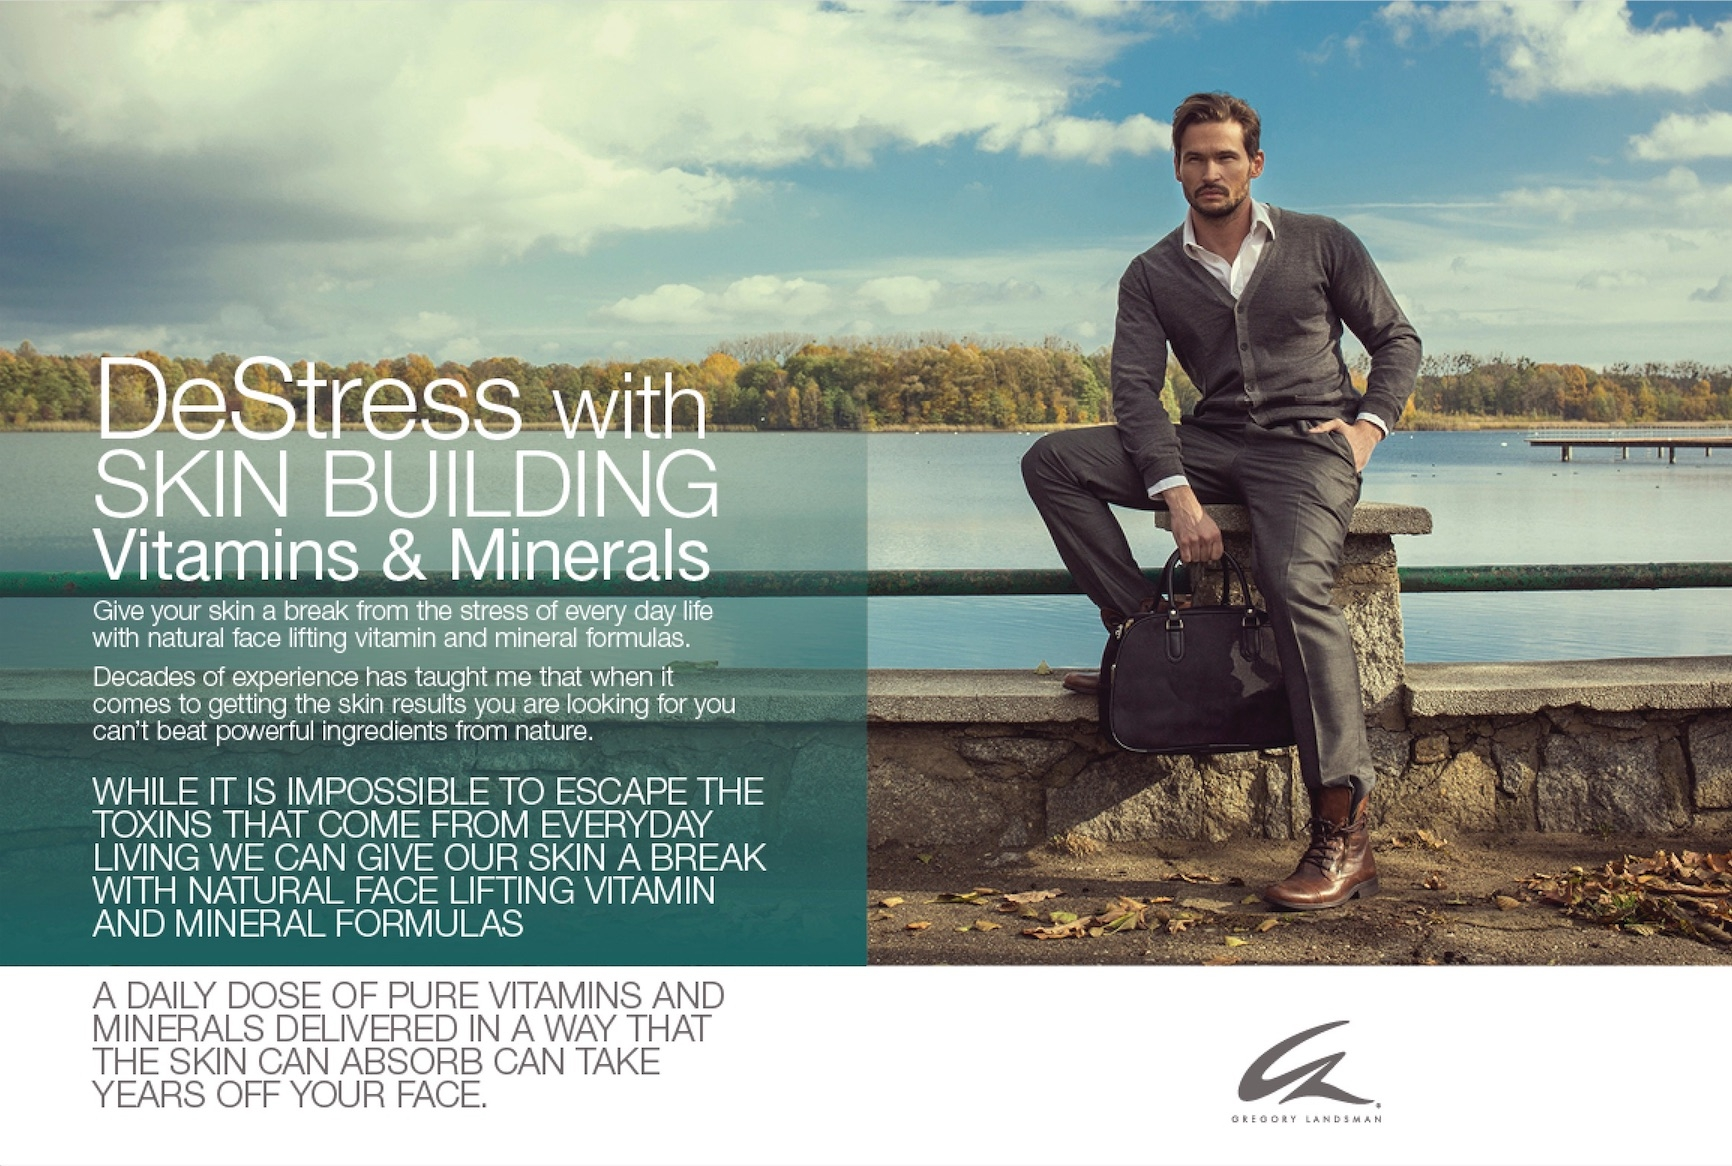 GREGORY LANDSMAN: DE-STRESS SKIN BY FEEDING IT THE RIGHT VITAMINS & MINERALS